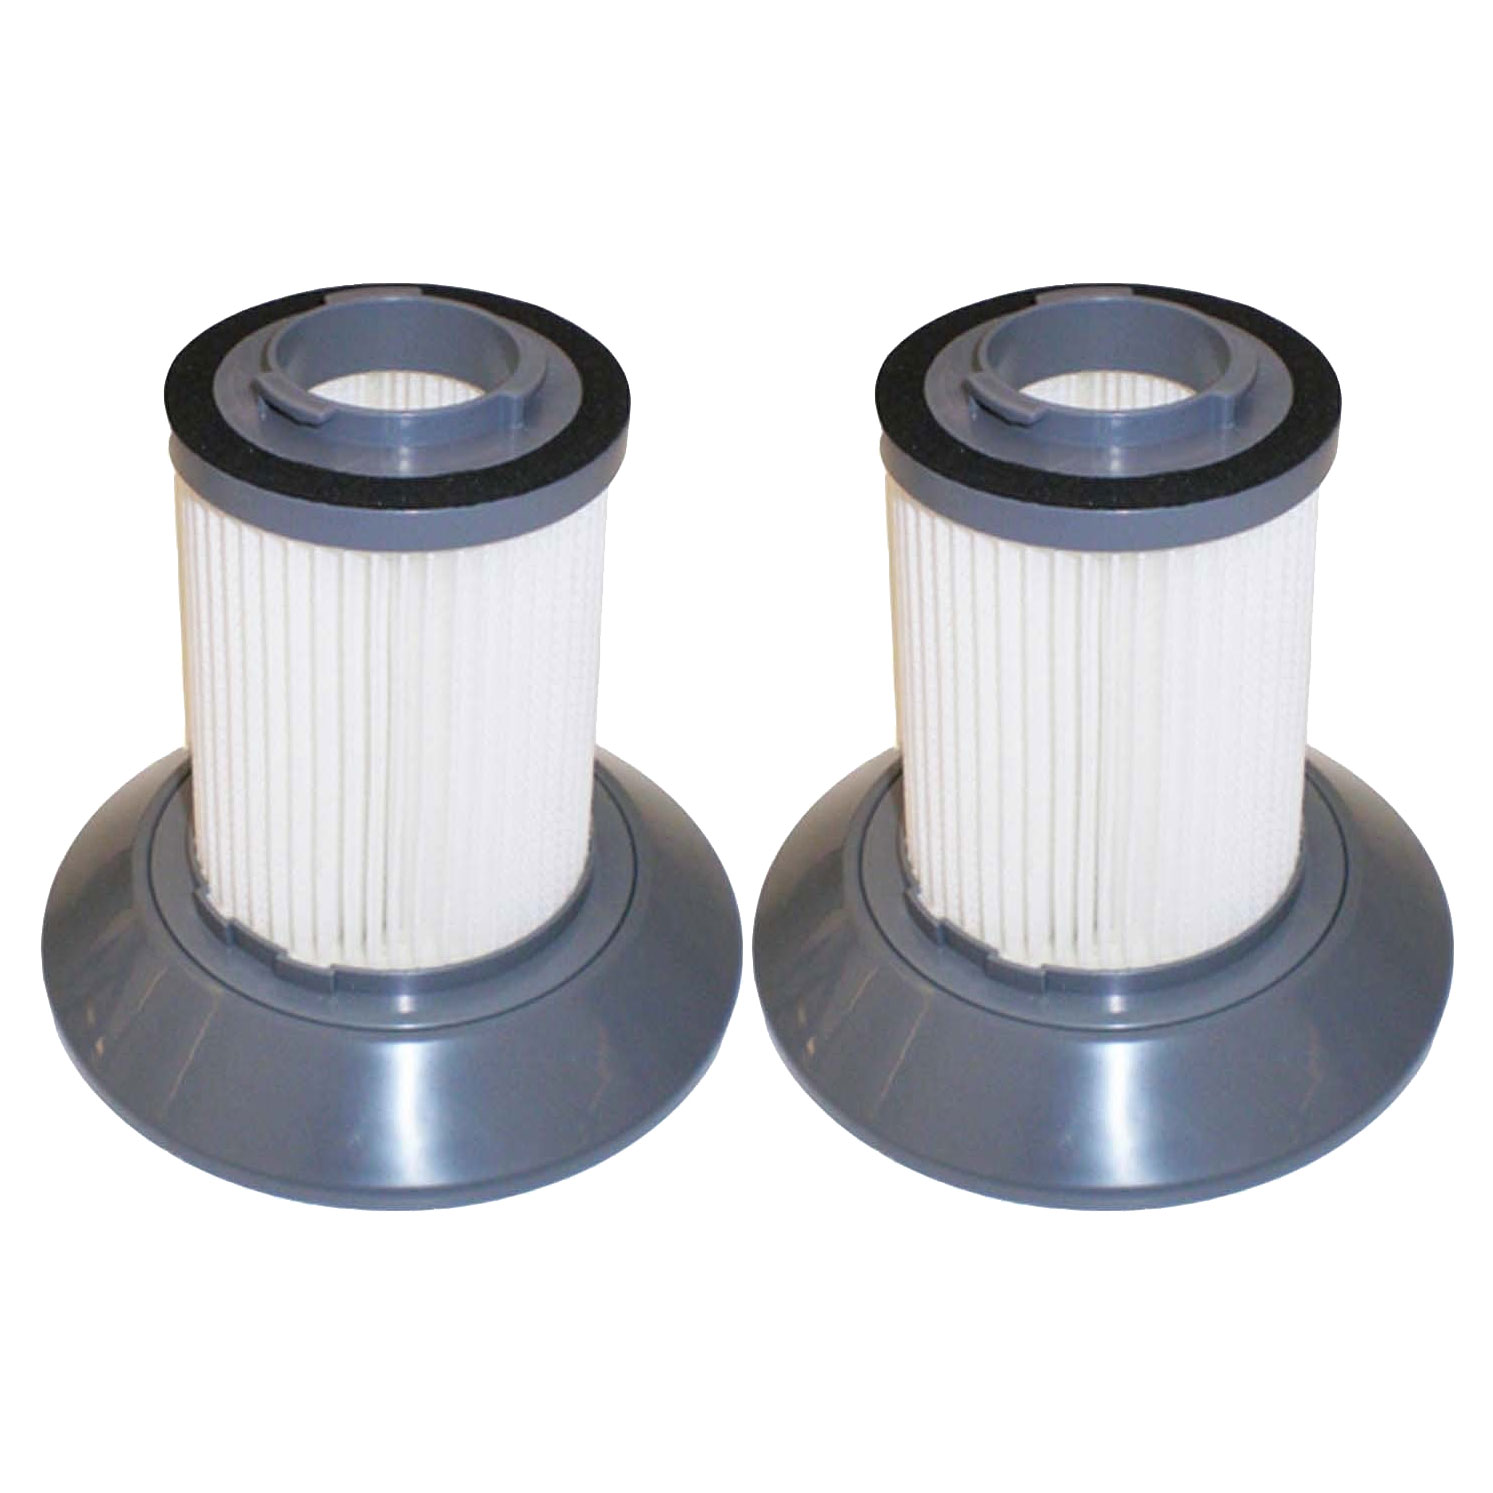 Felji 2 Pack Replacement Filters for Bissell Dirt Bin Zing Bagless Canister Vacuum Part # 203-1532